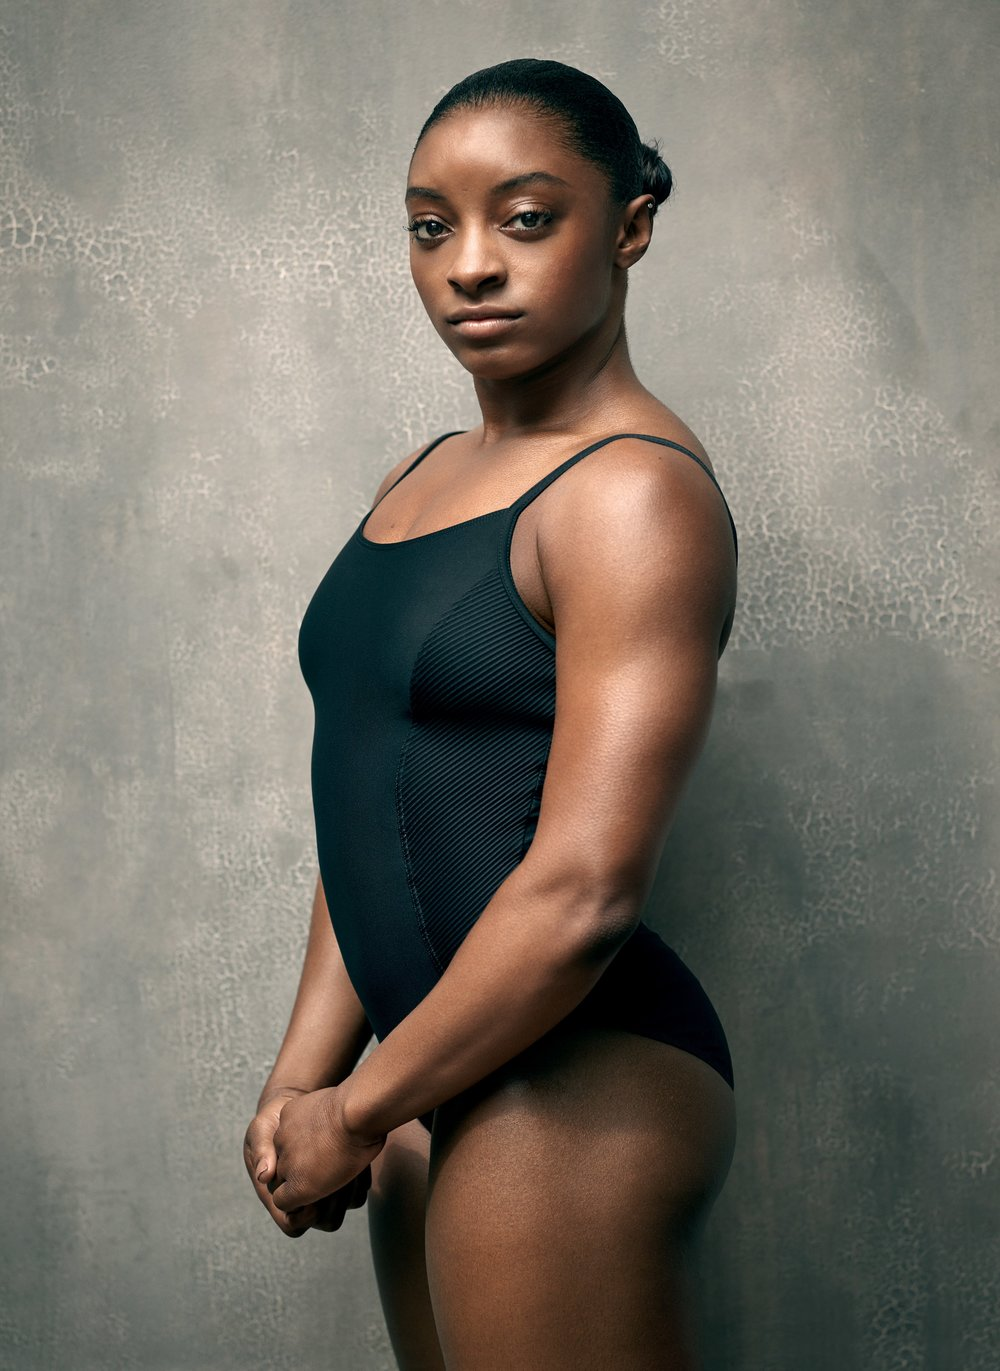 Simone Biles - Singer, dancer, actress, and political activist showing young girls how it's done